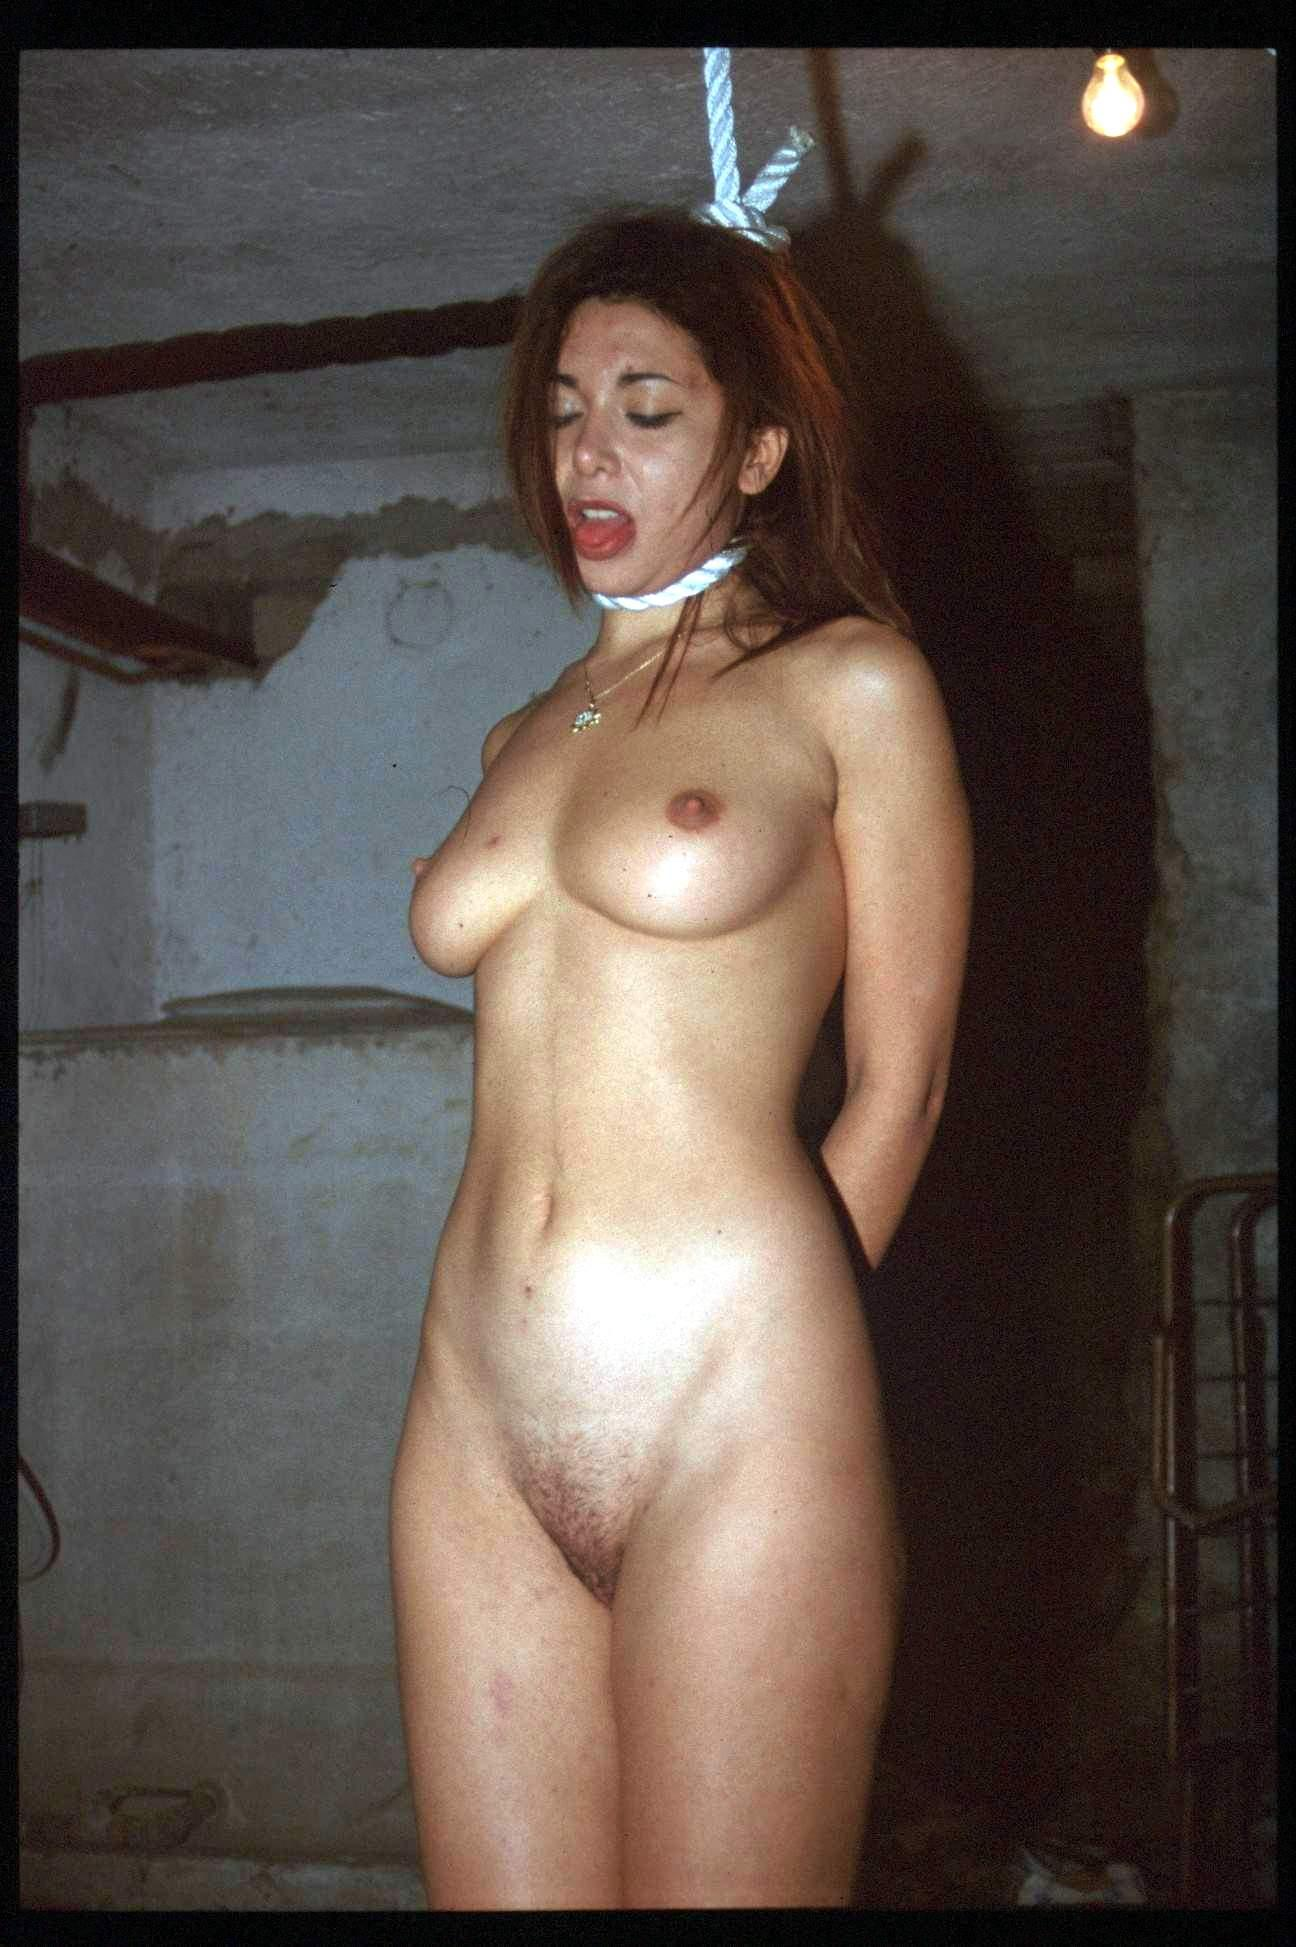 The bdsm neck hanged fart lucky